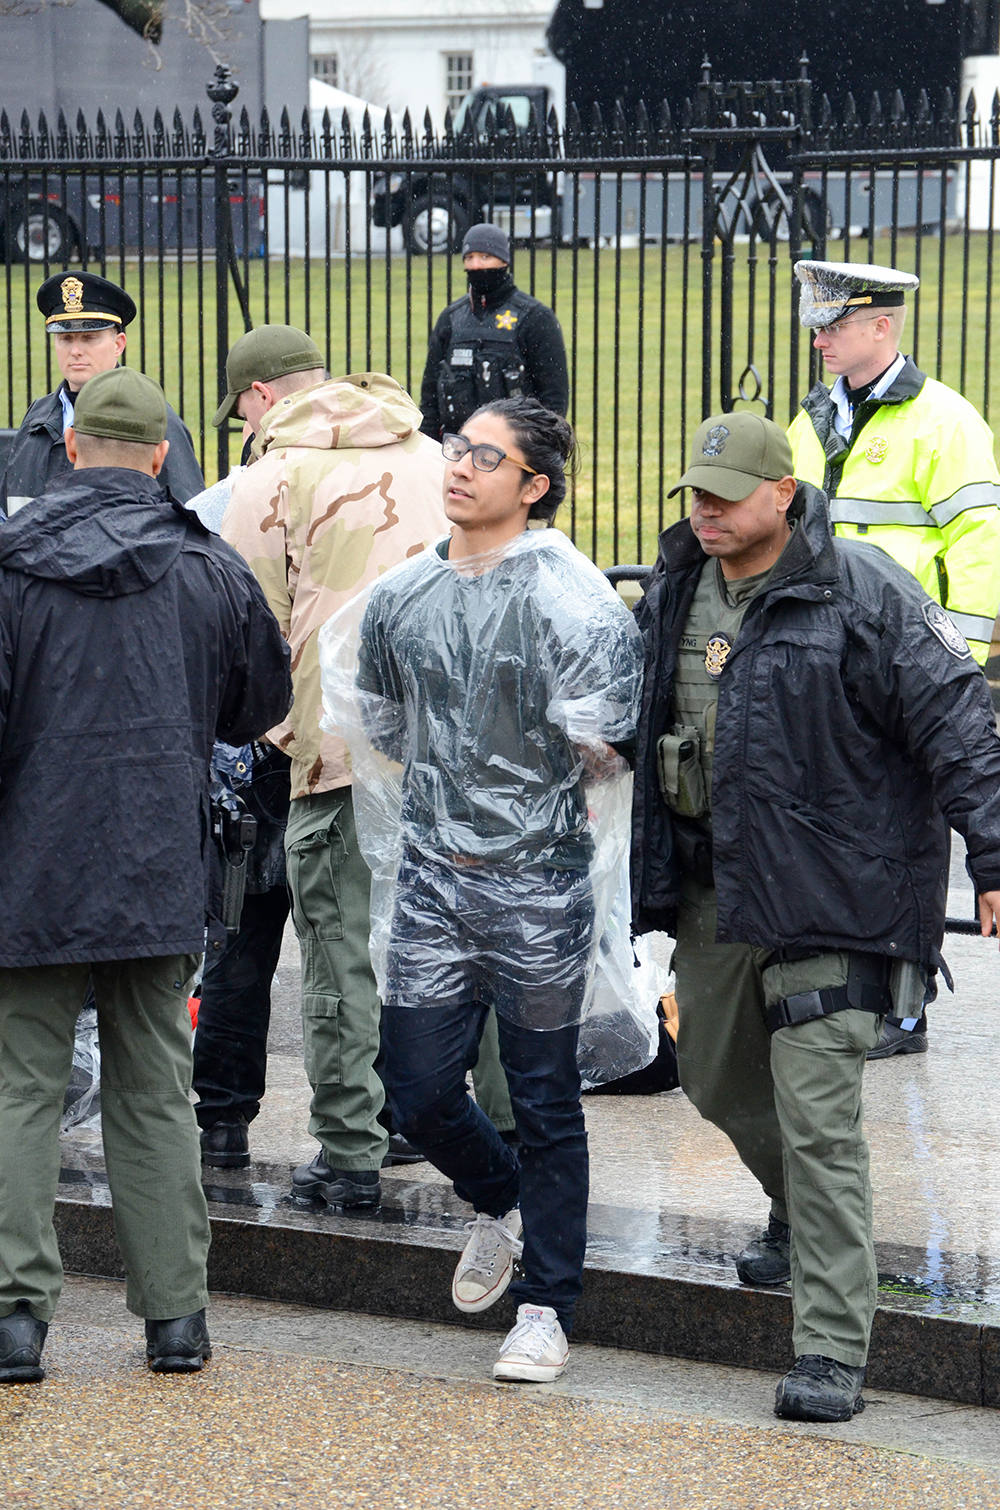 UConn student Eric Cruz López is walked toward a van after being handcuffed by United States Park Police during a civil disobedience action in front of the White House in February 2016. (Courtesy/Eric Cruz López)